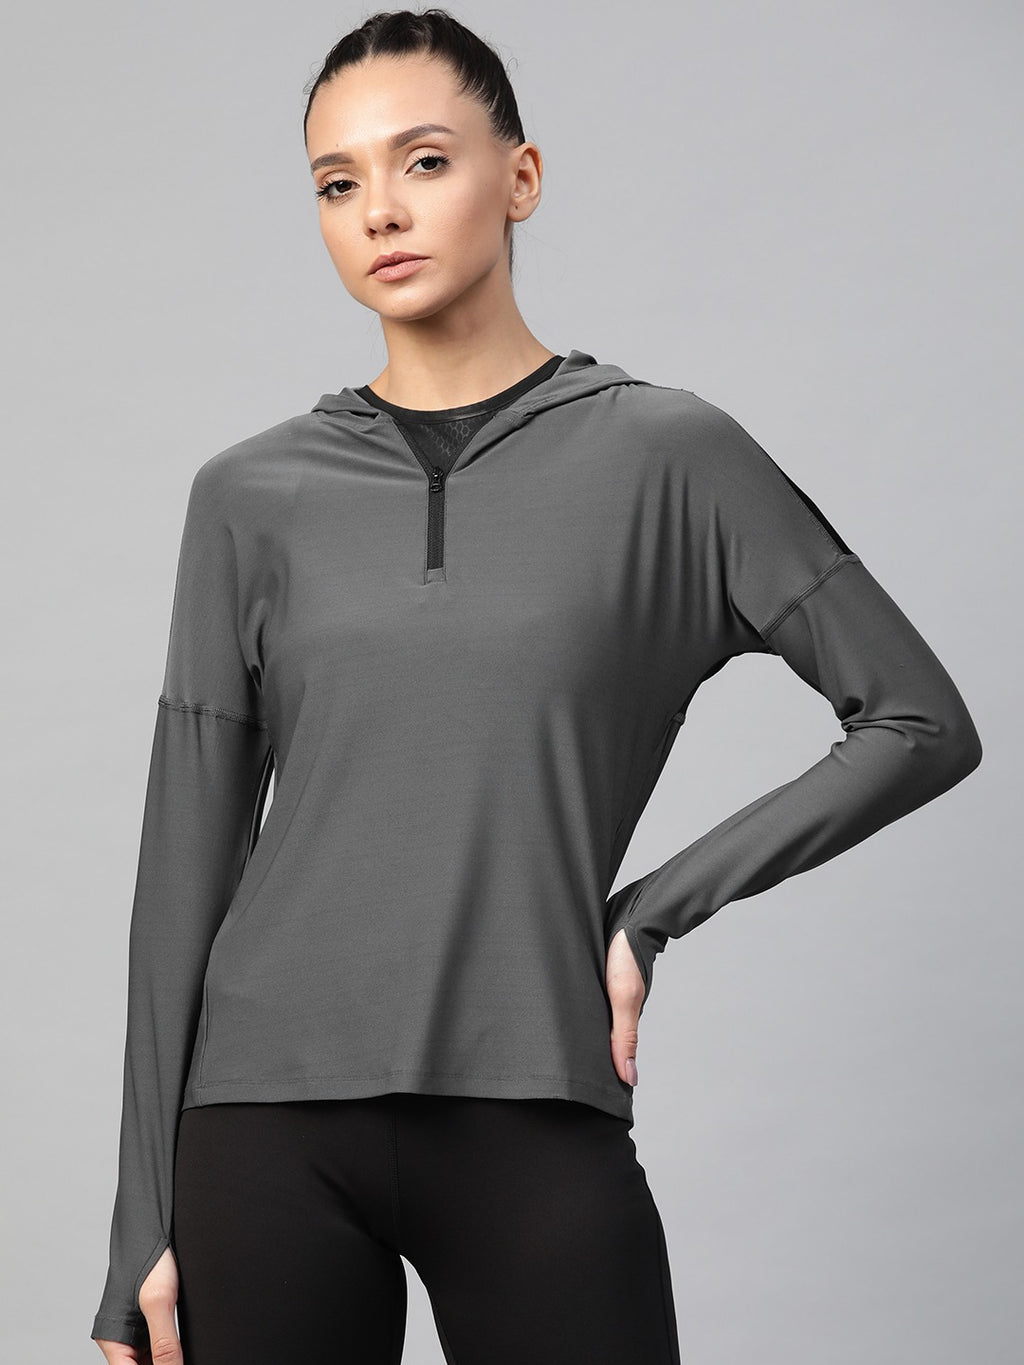 Fitkin Women Charcoal Grey Solid Hooded Training T-shirt